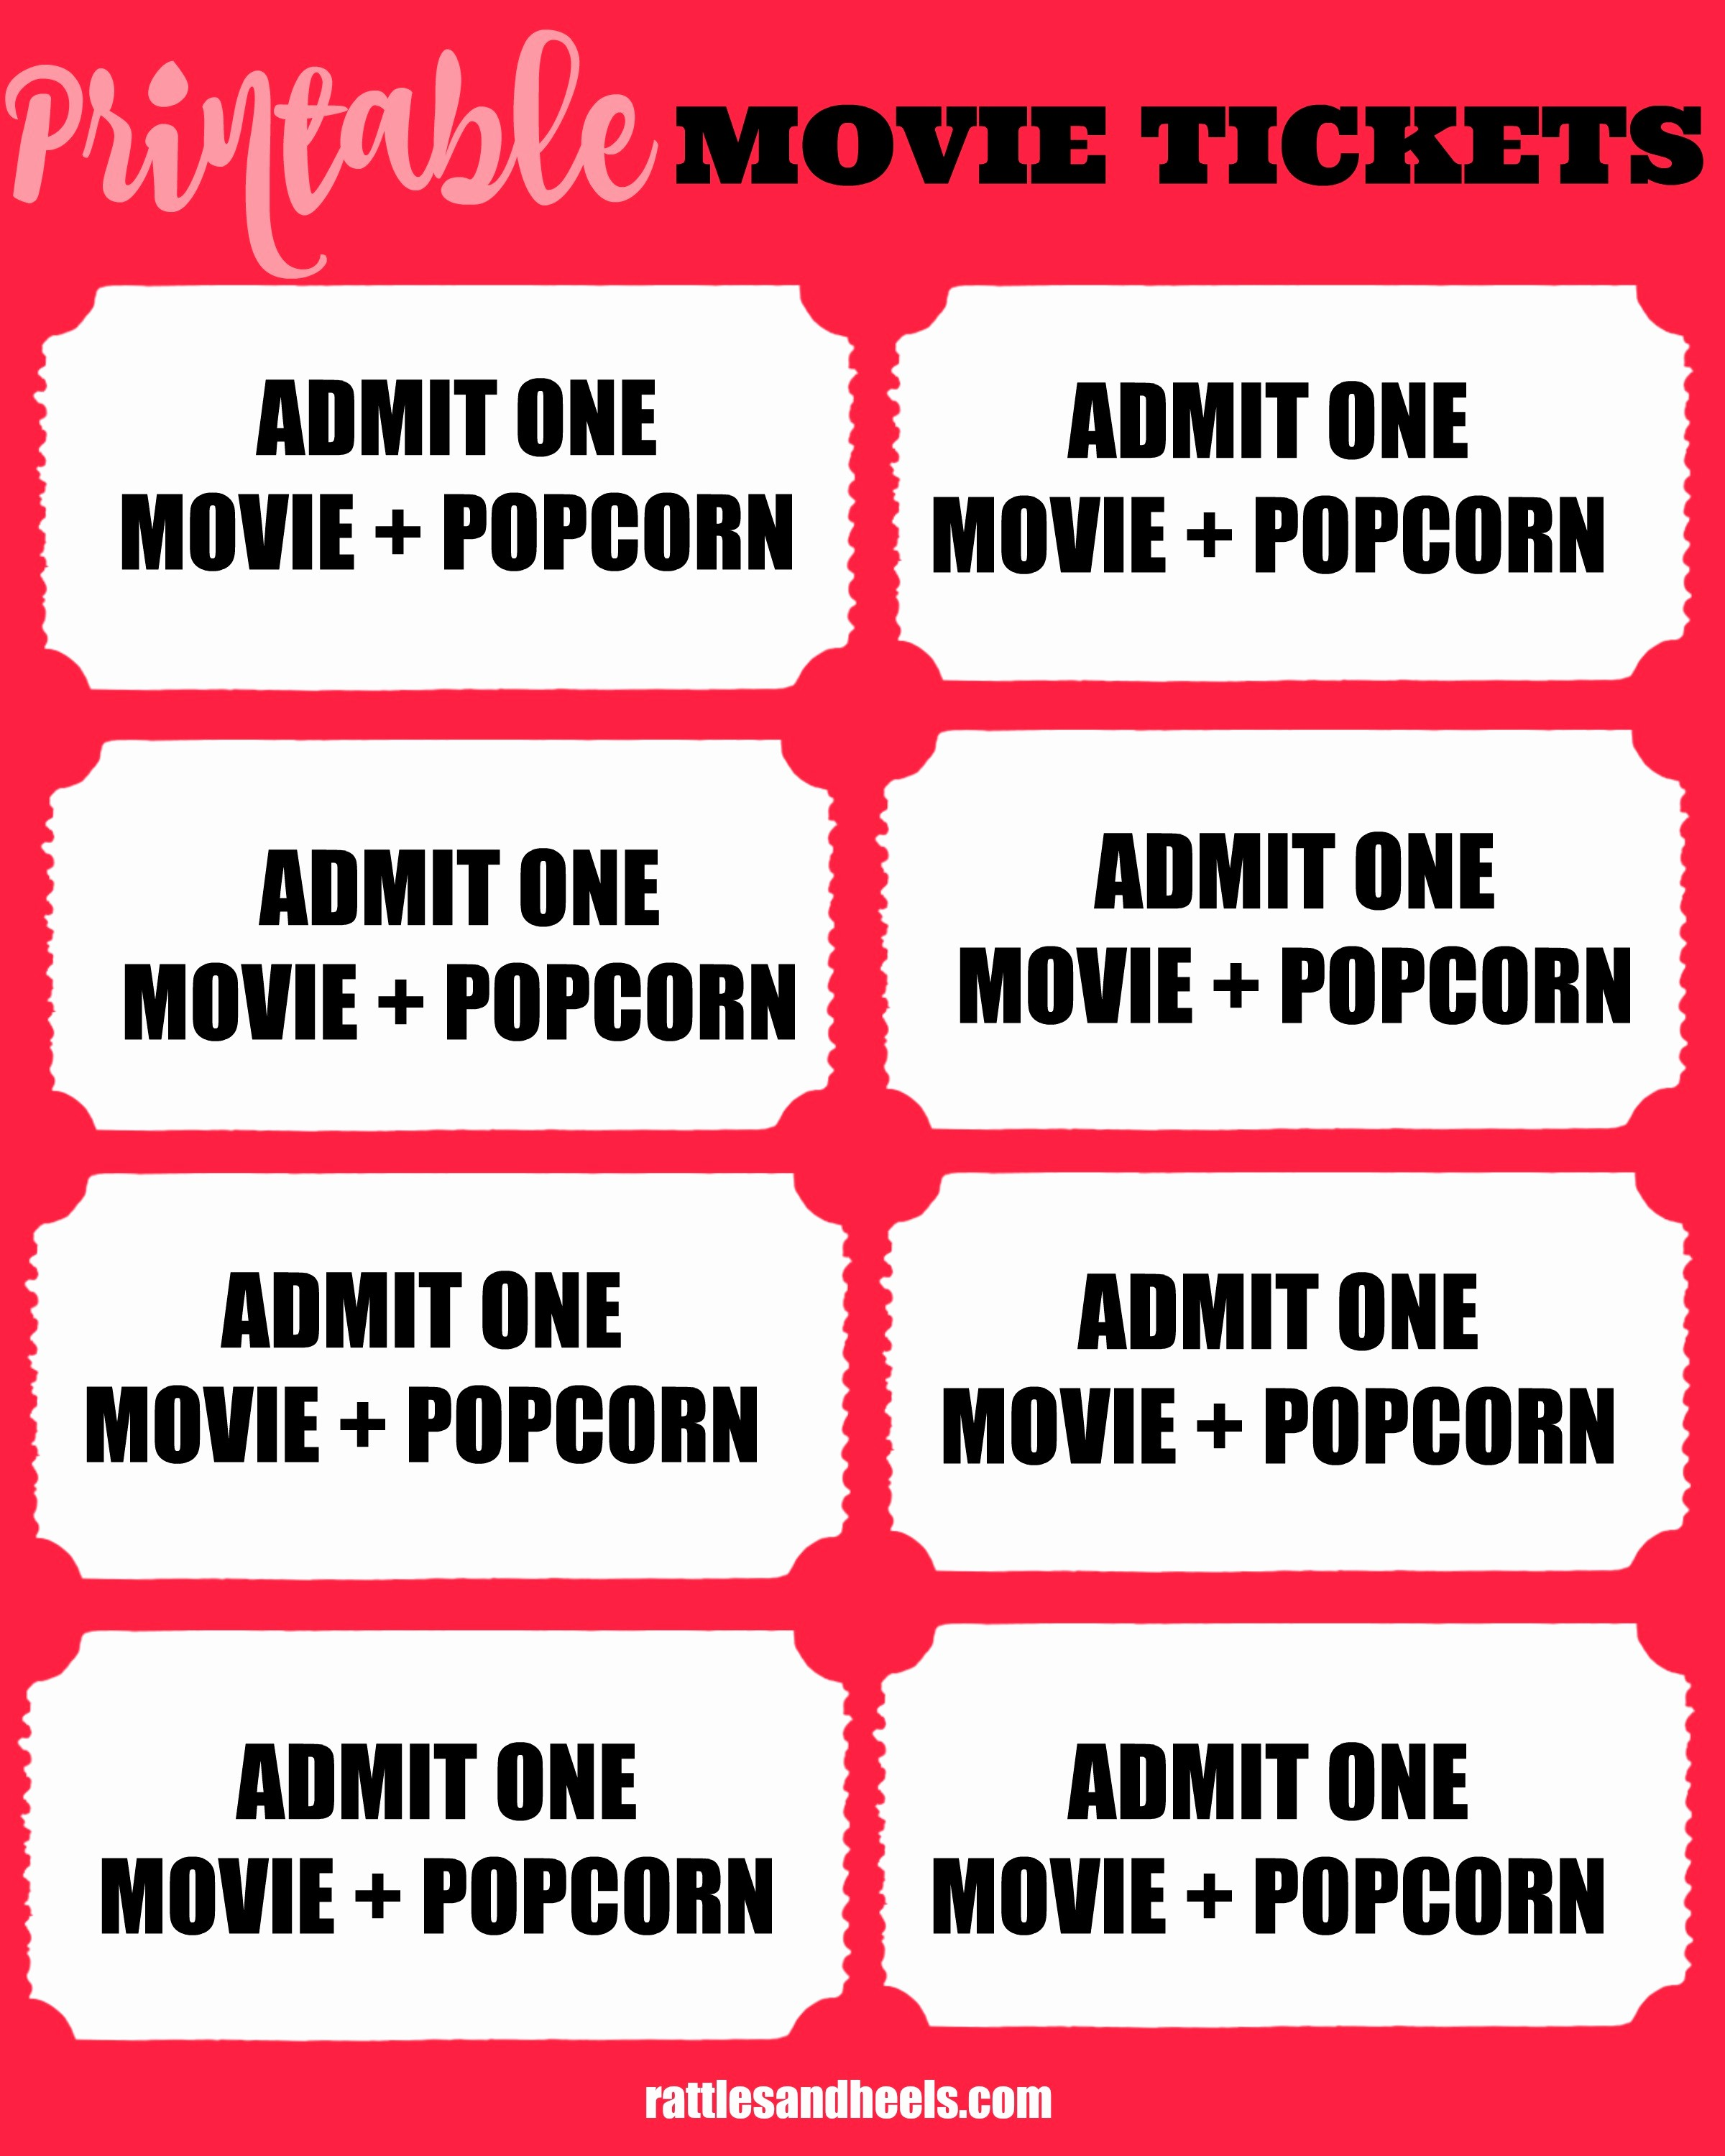 Movie Ticket Template Free Printable Lovely Family Movie Night with Printable Movie Tickets Giveaway